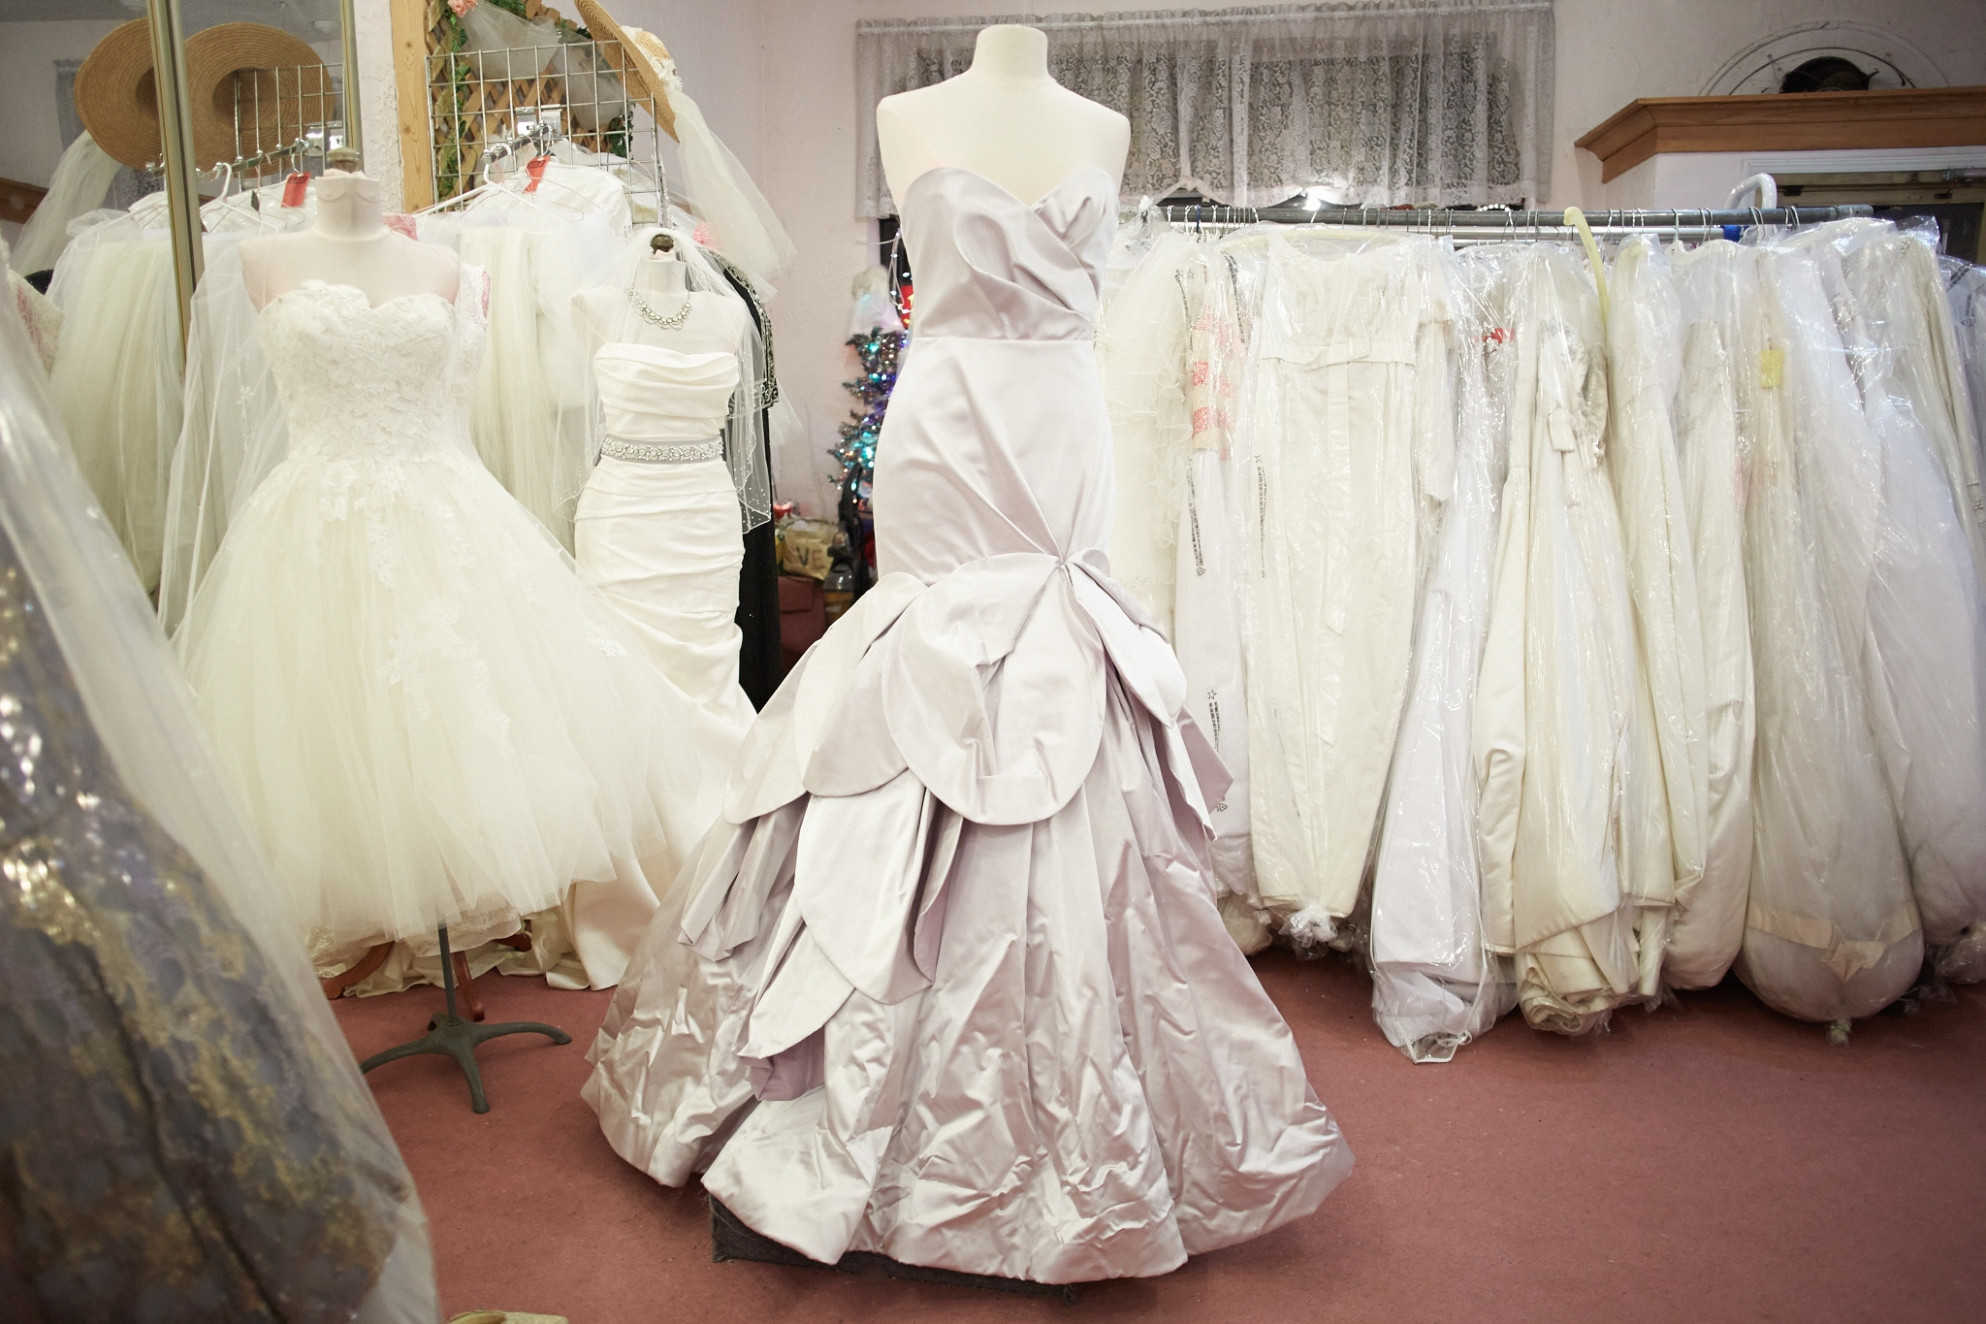 Elegant Vintage Wedding Dress Shops Near Me | Vintage ...